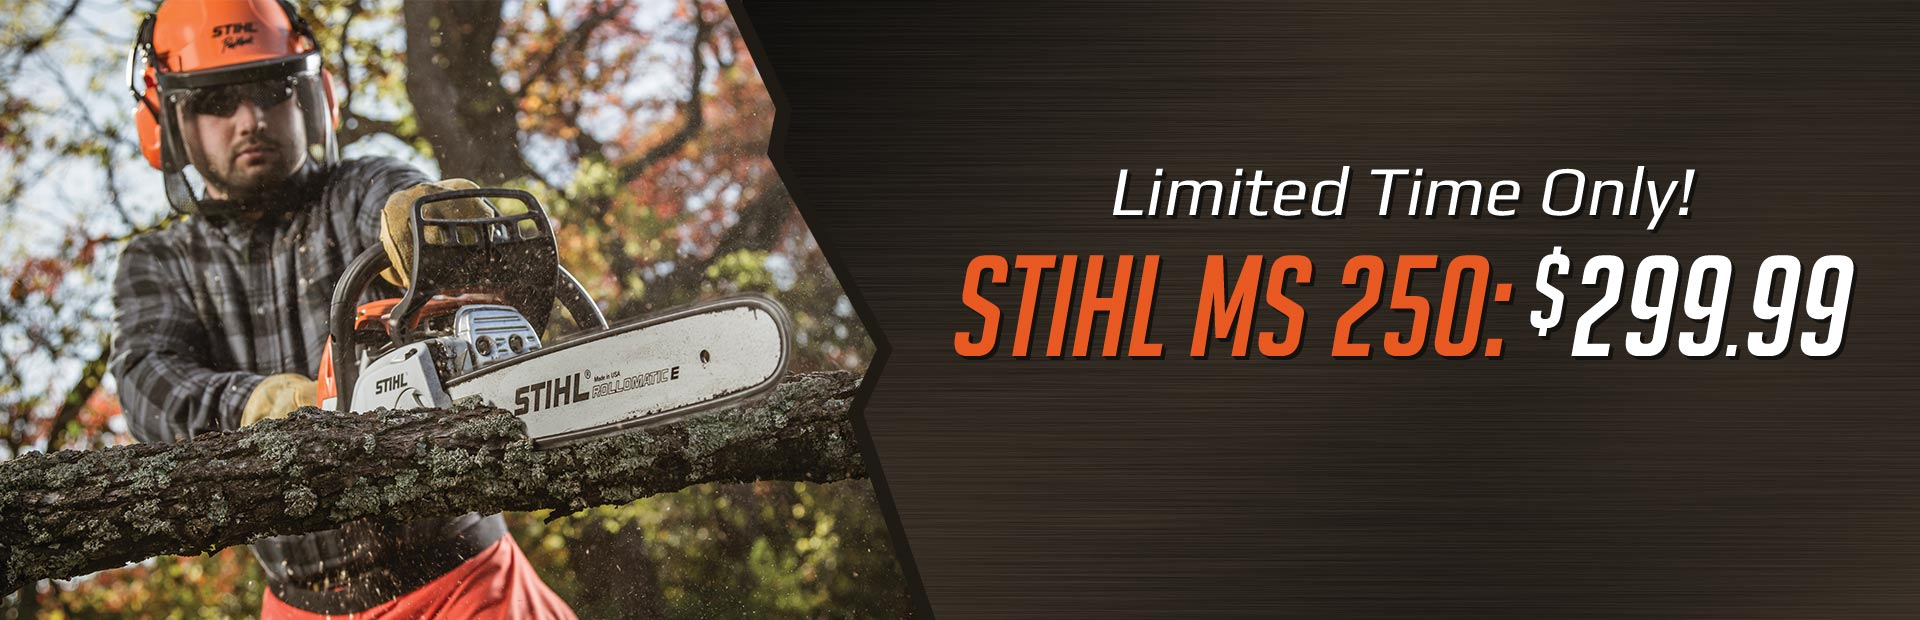 Get the STIHL MS 250 for $299.99 for a limited time only!